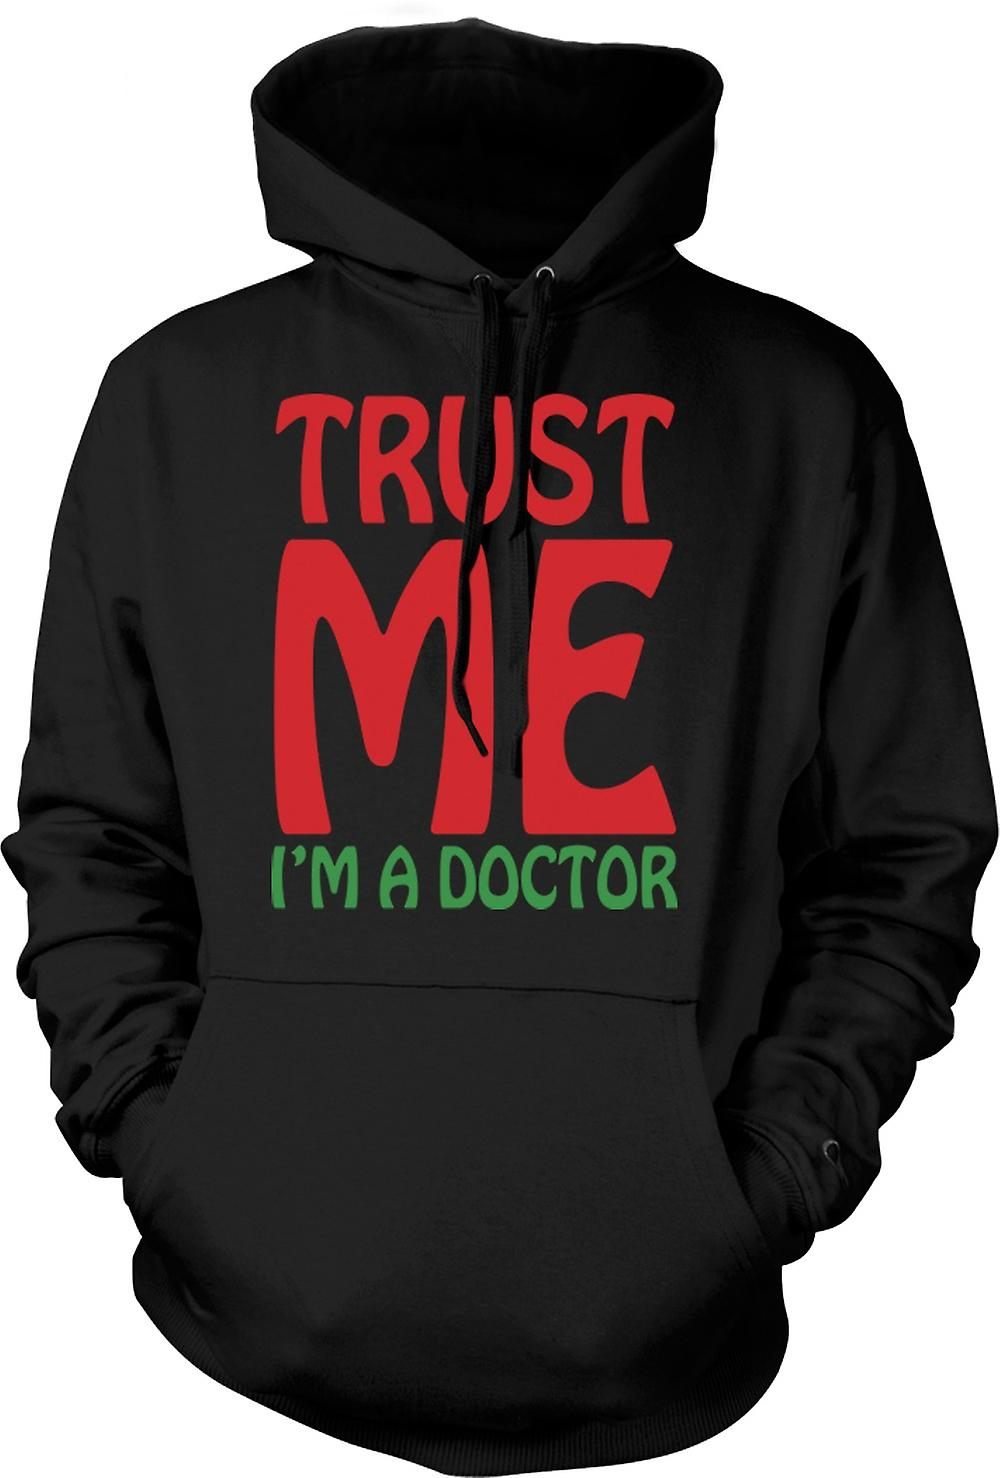 Kids Hoodie - Trust Me I'm A Doctor - Funny